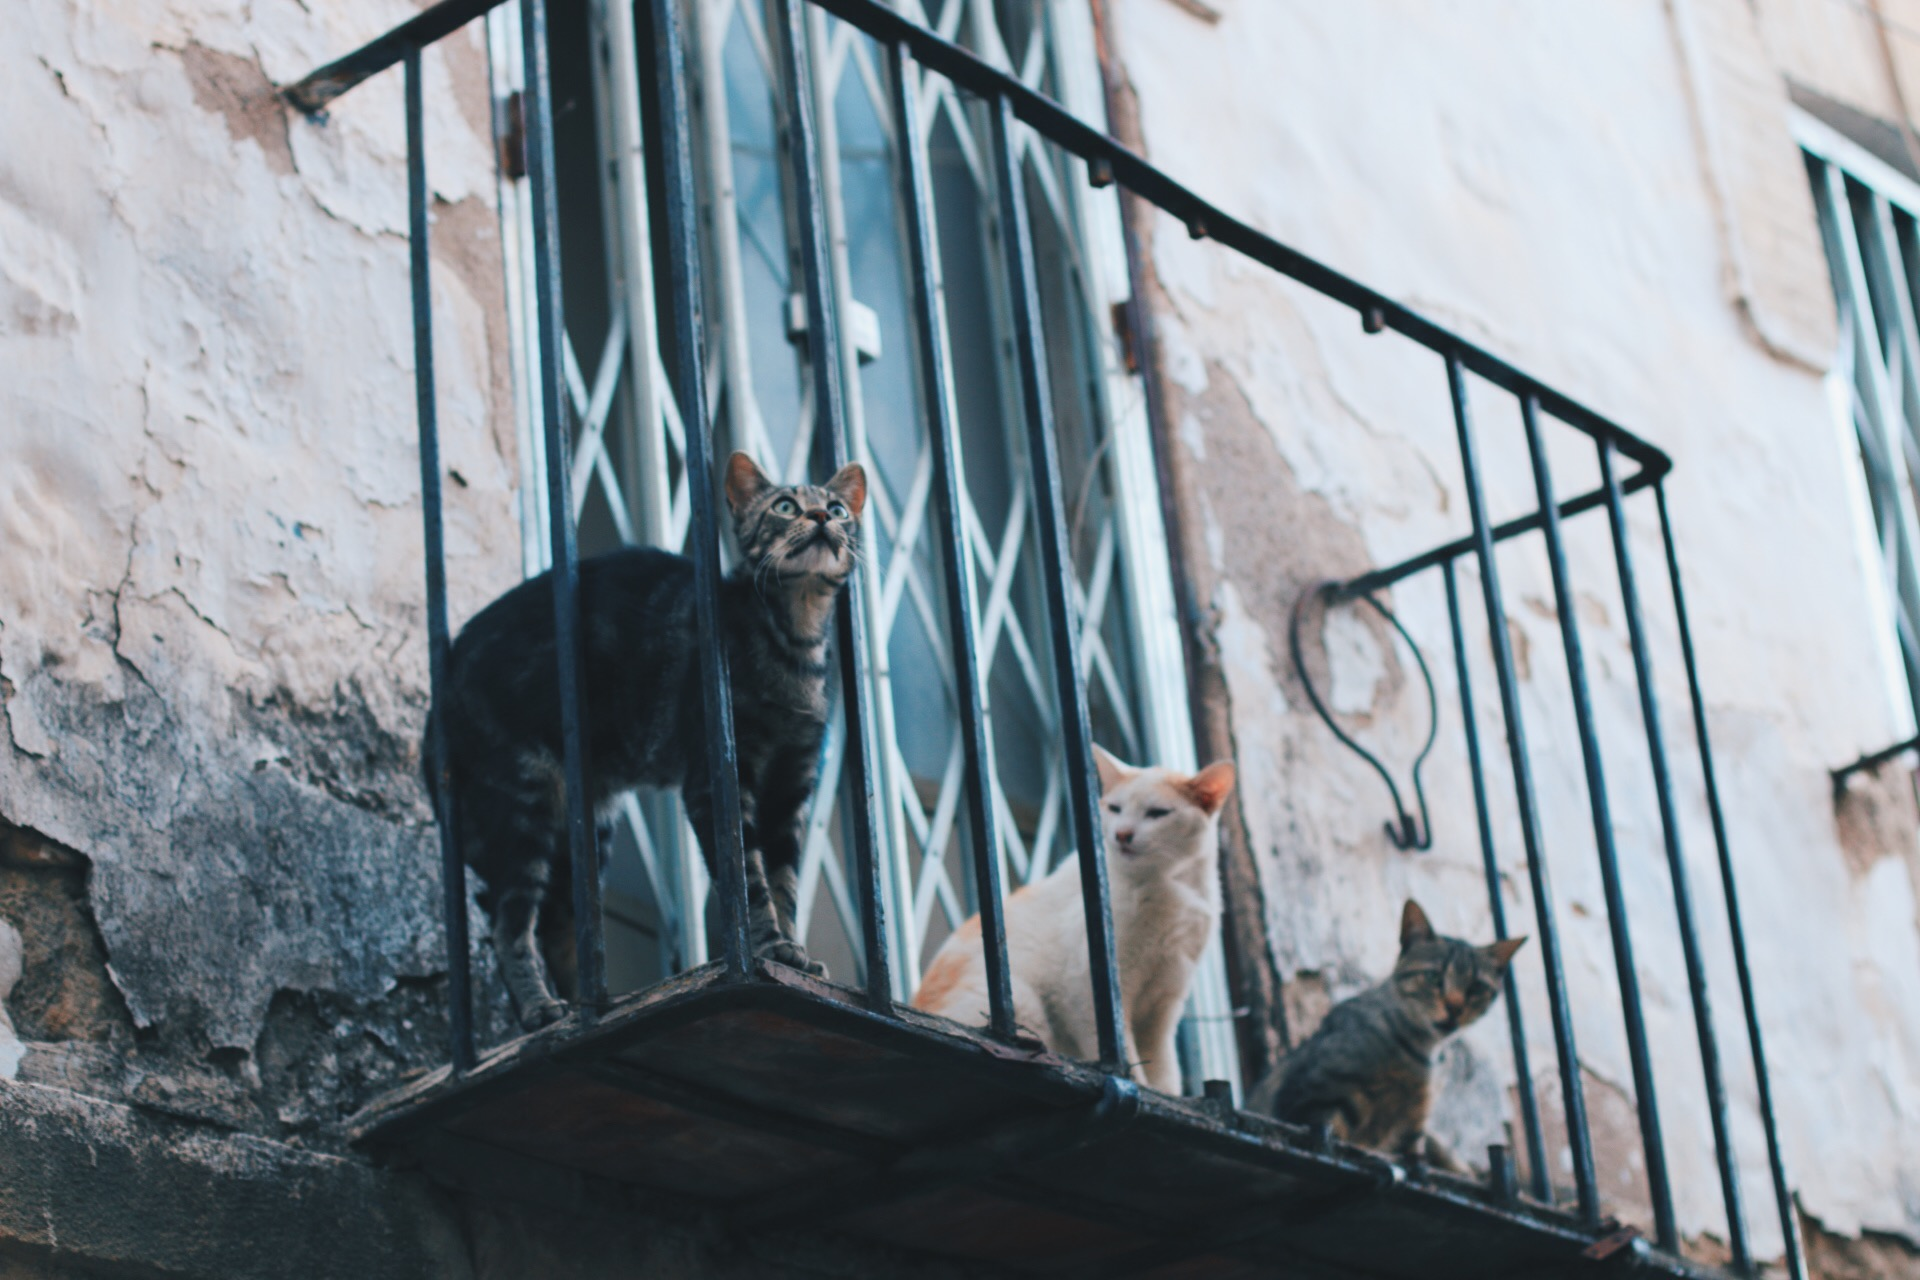 EVERYWHERE YOU LOOK. CATS ON WATCH.